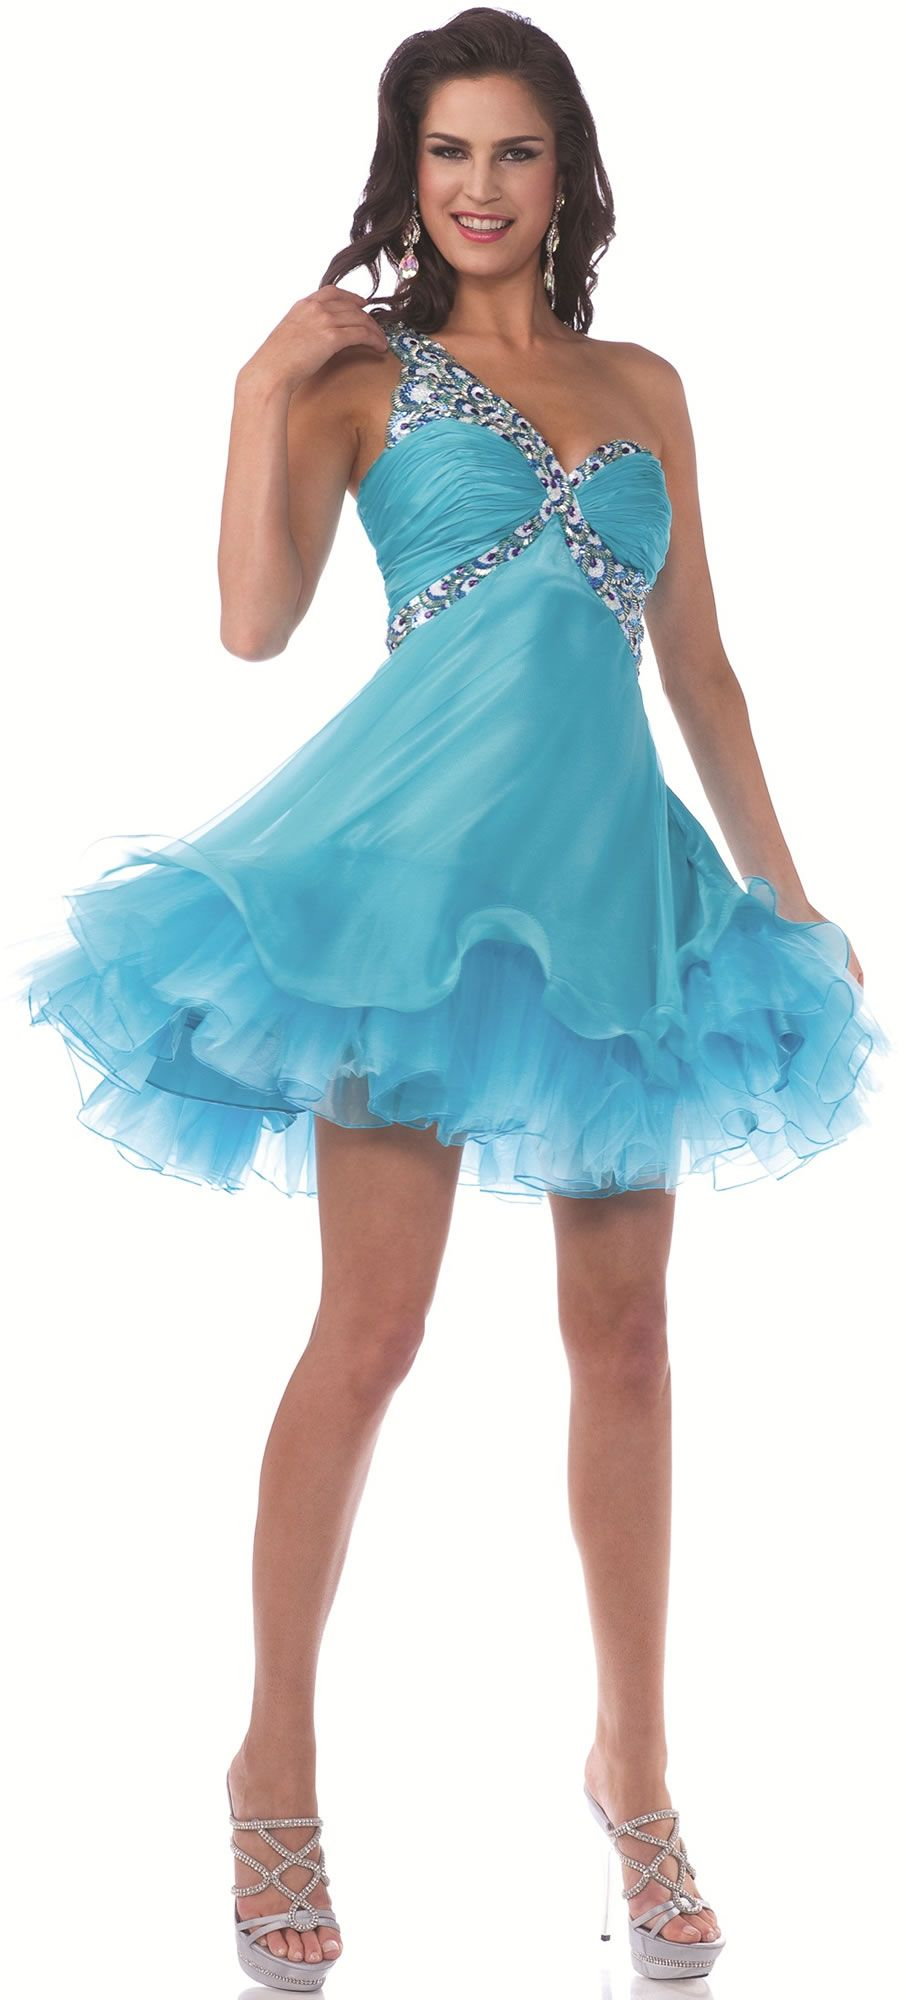 poffy prom dress | Adorable Poofy Prom Homecoming Dress with ...